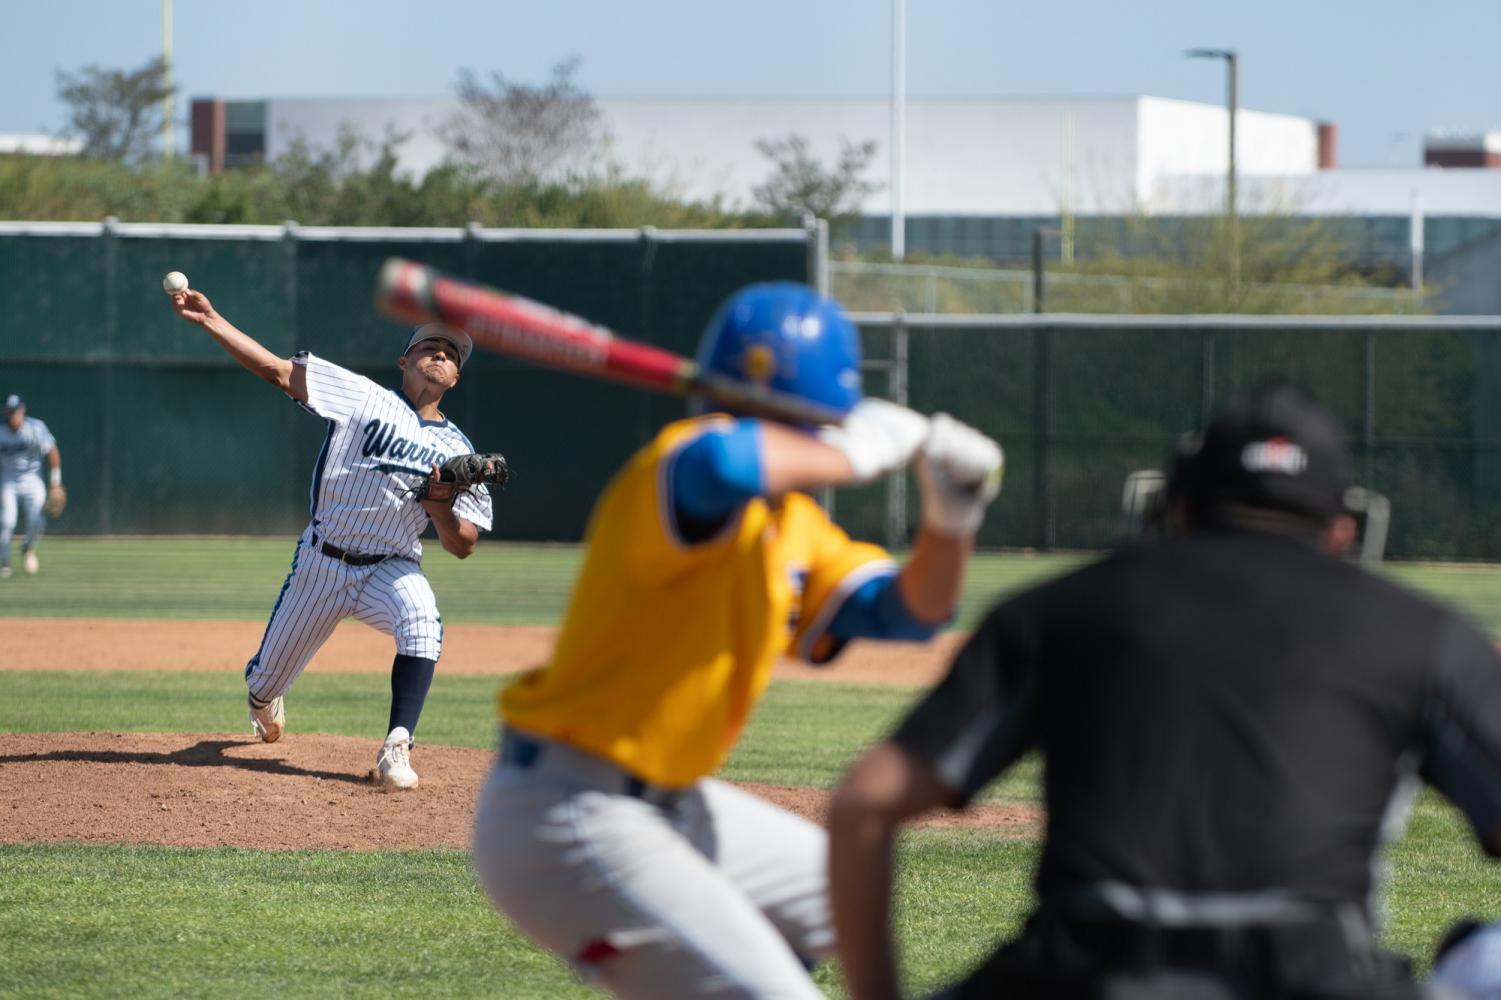 Warriors pitcher Aaron Orozco follows through on his pitch versus LA Harbor Tuesday, April 23, at Warrior Field. LA Harbor's lone run came in the fourth inning. Photo credit: Elena Perez